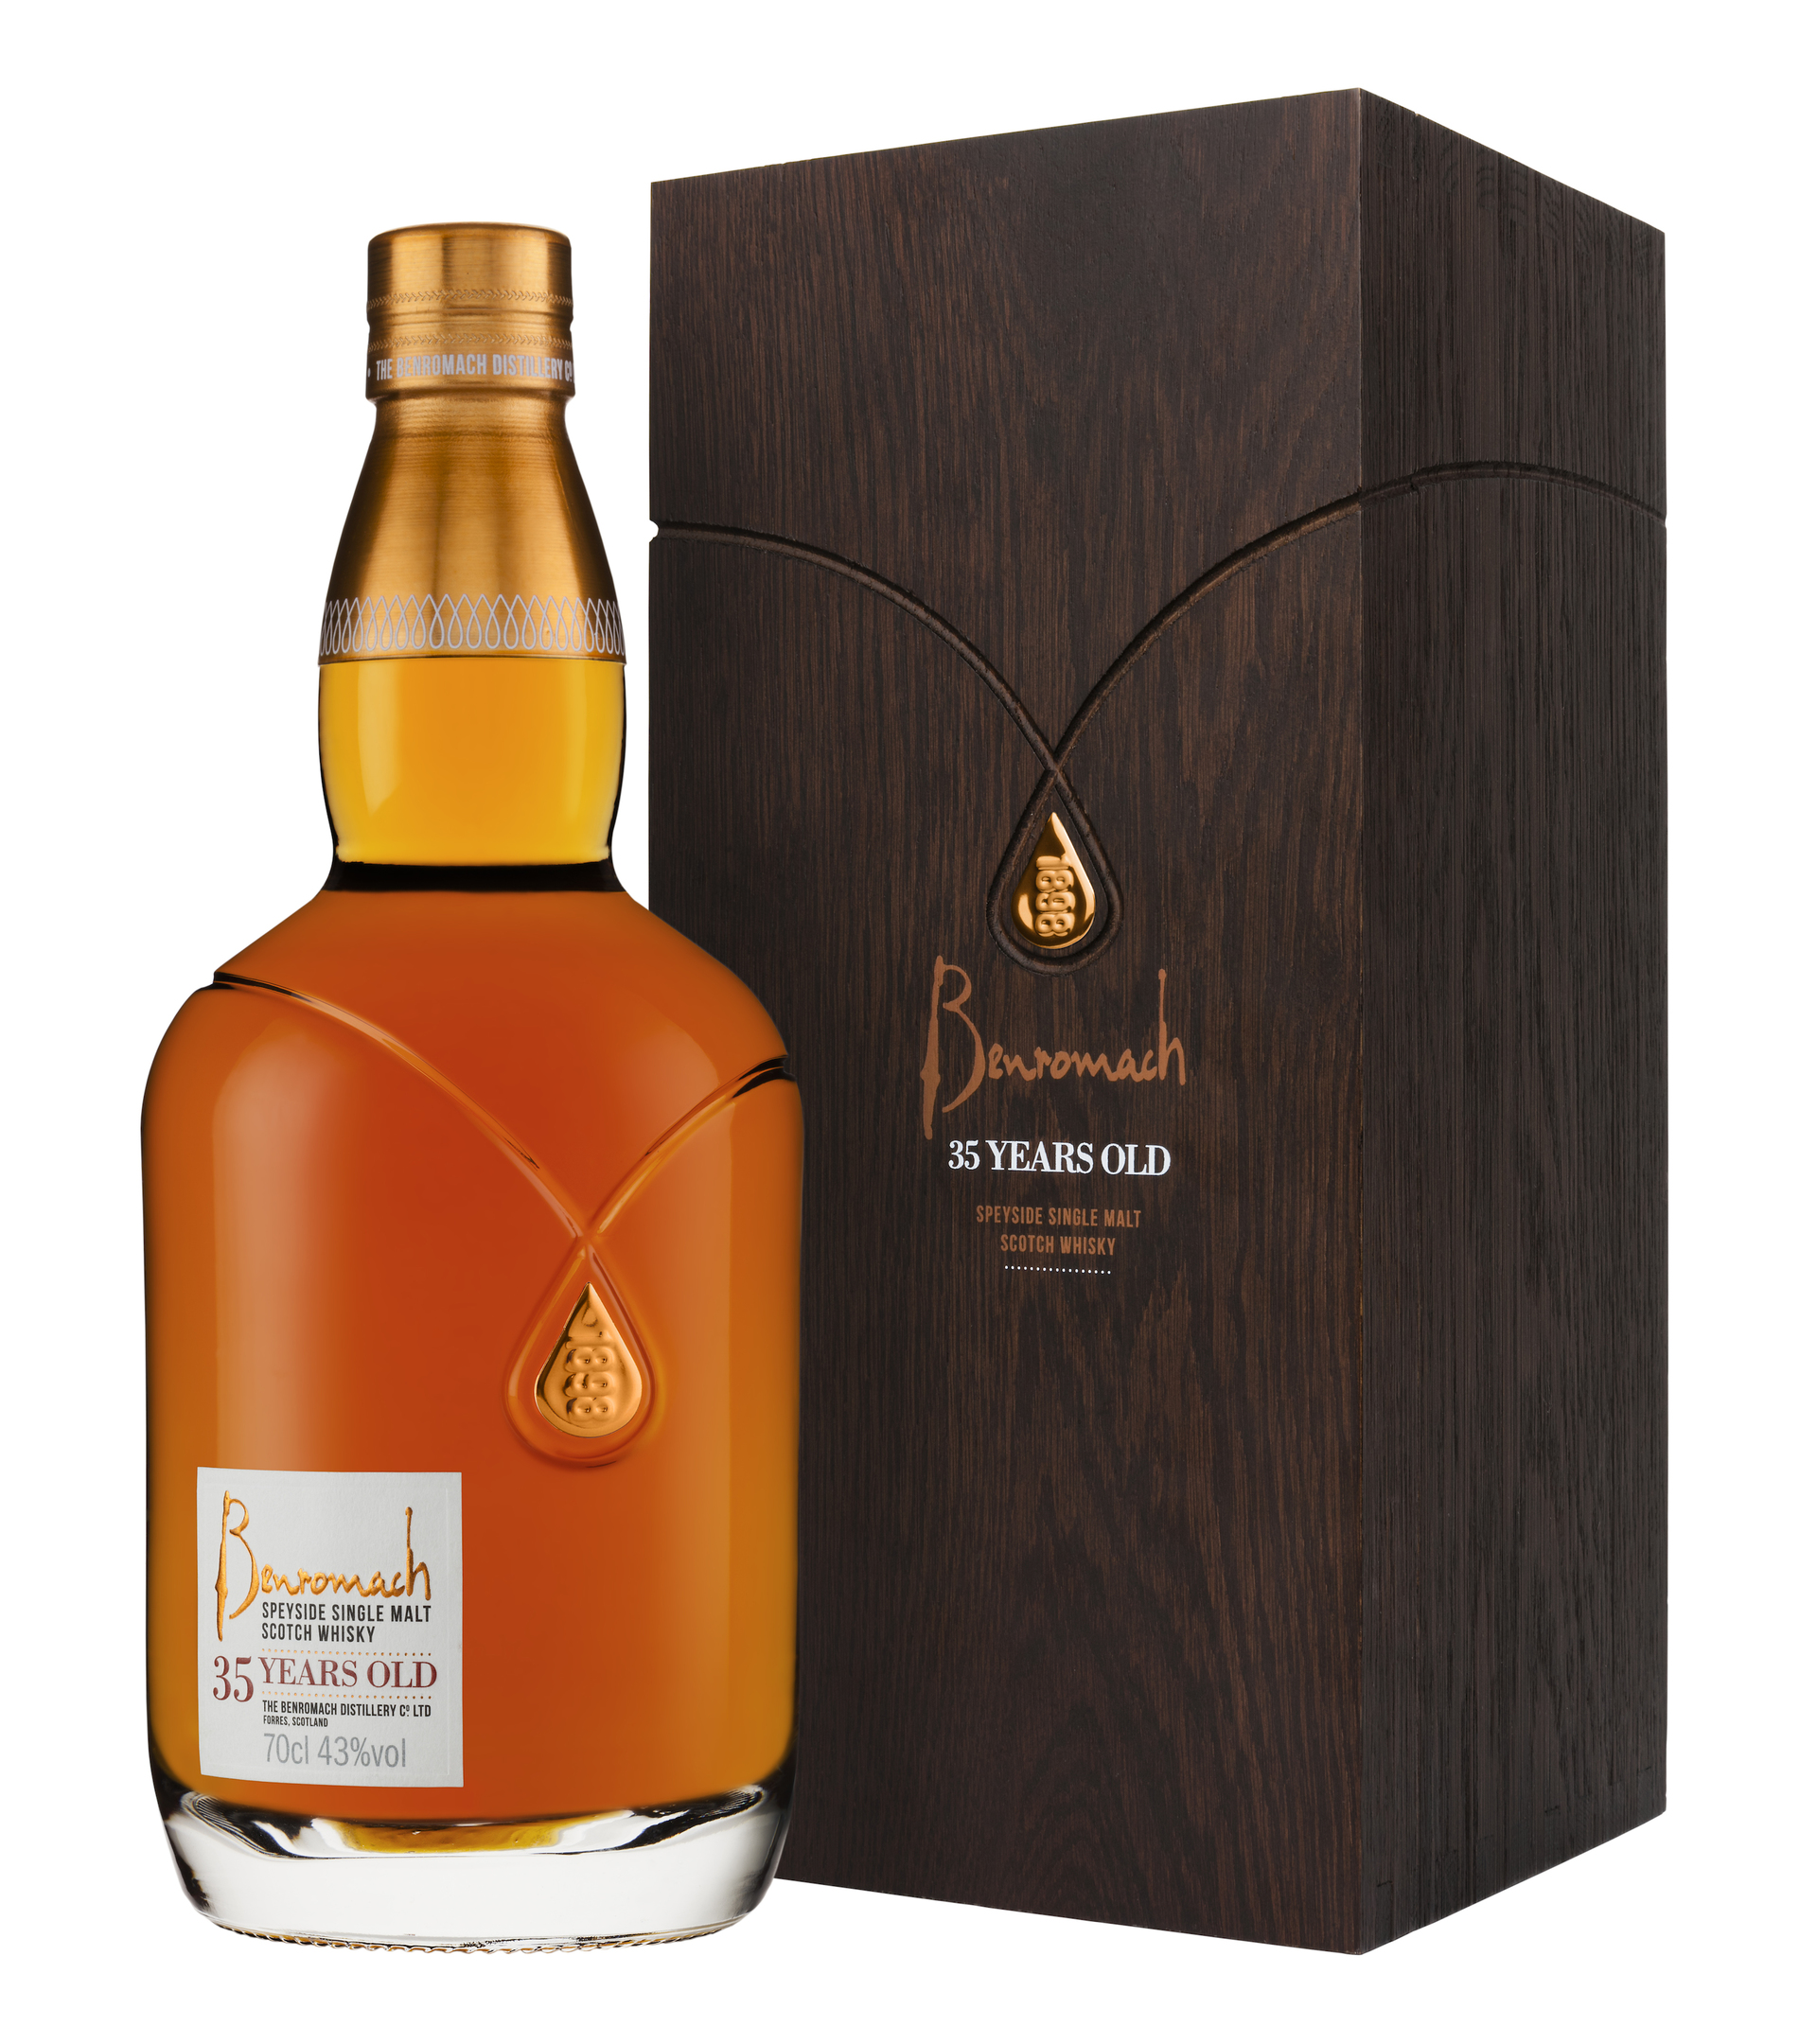 Benromach, 35-year-old